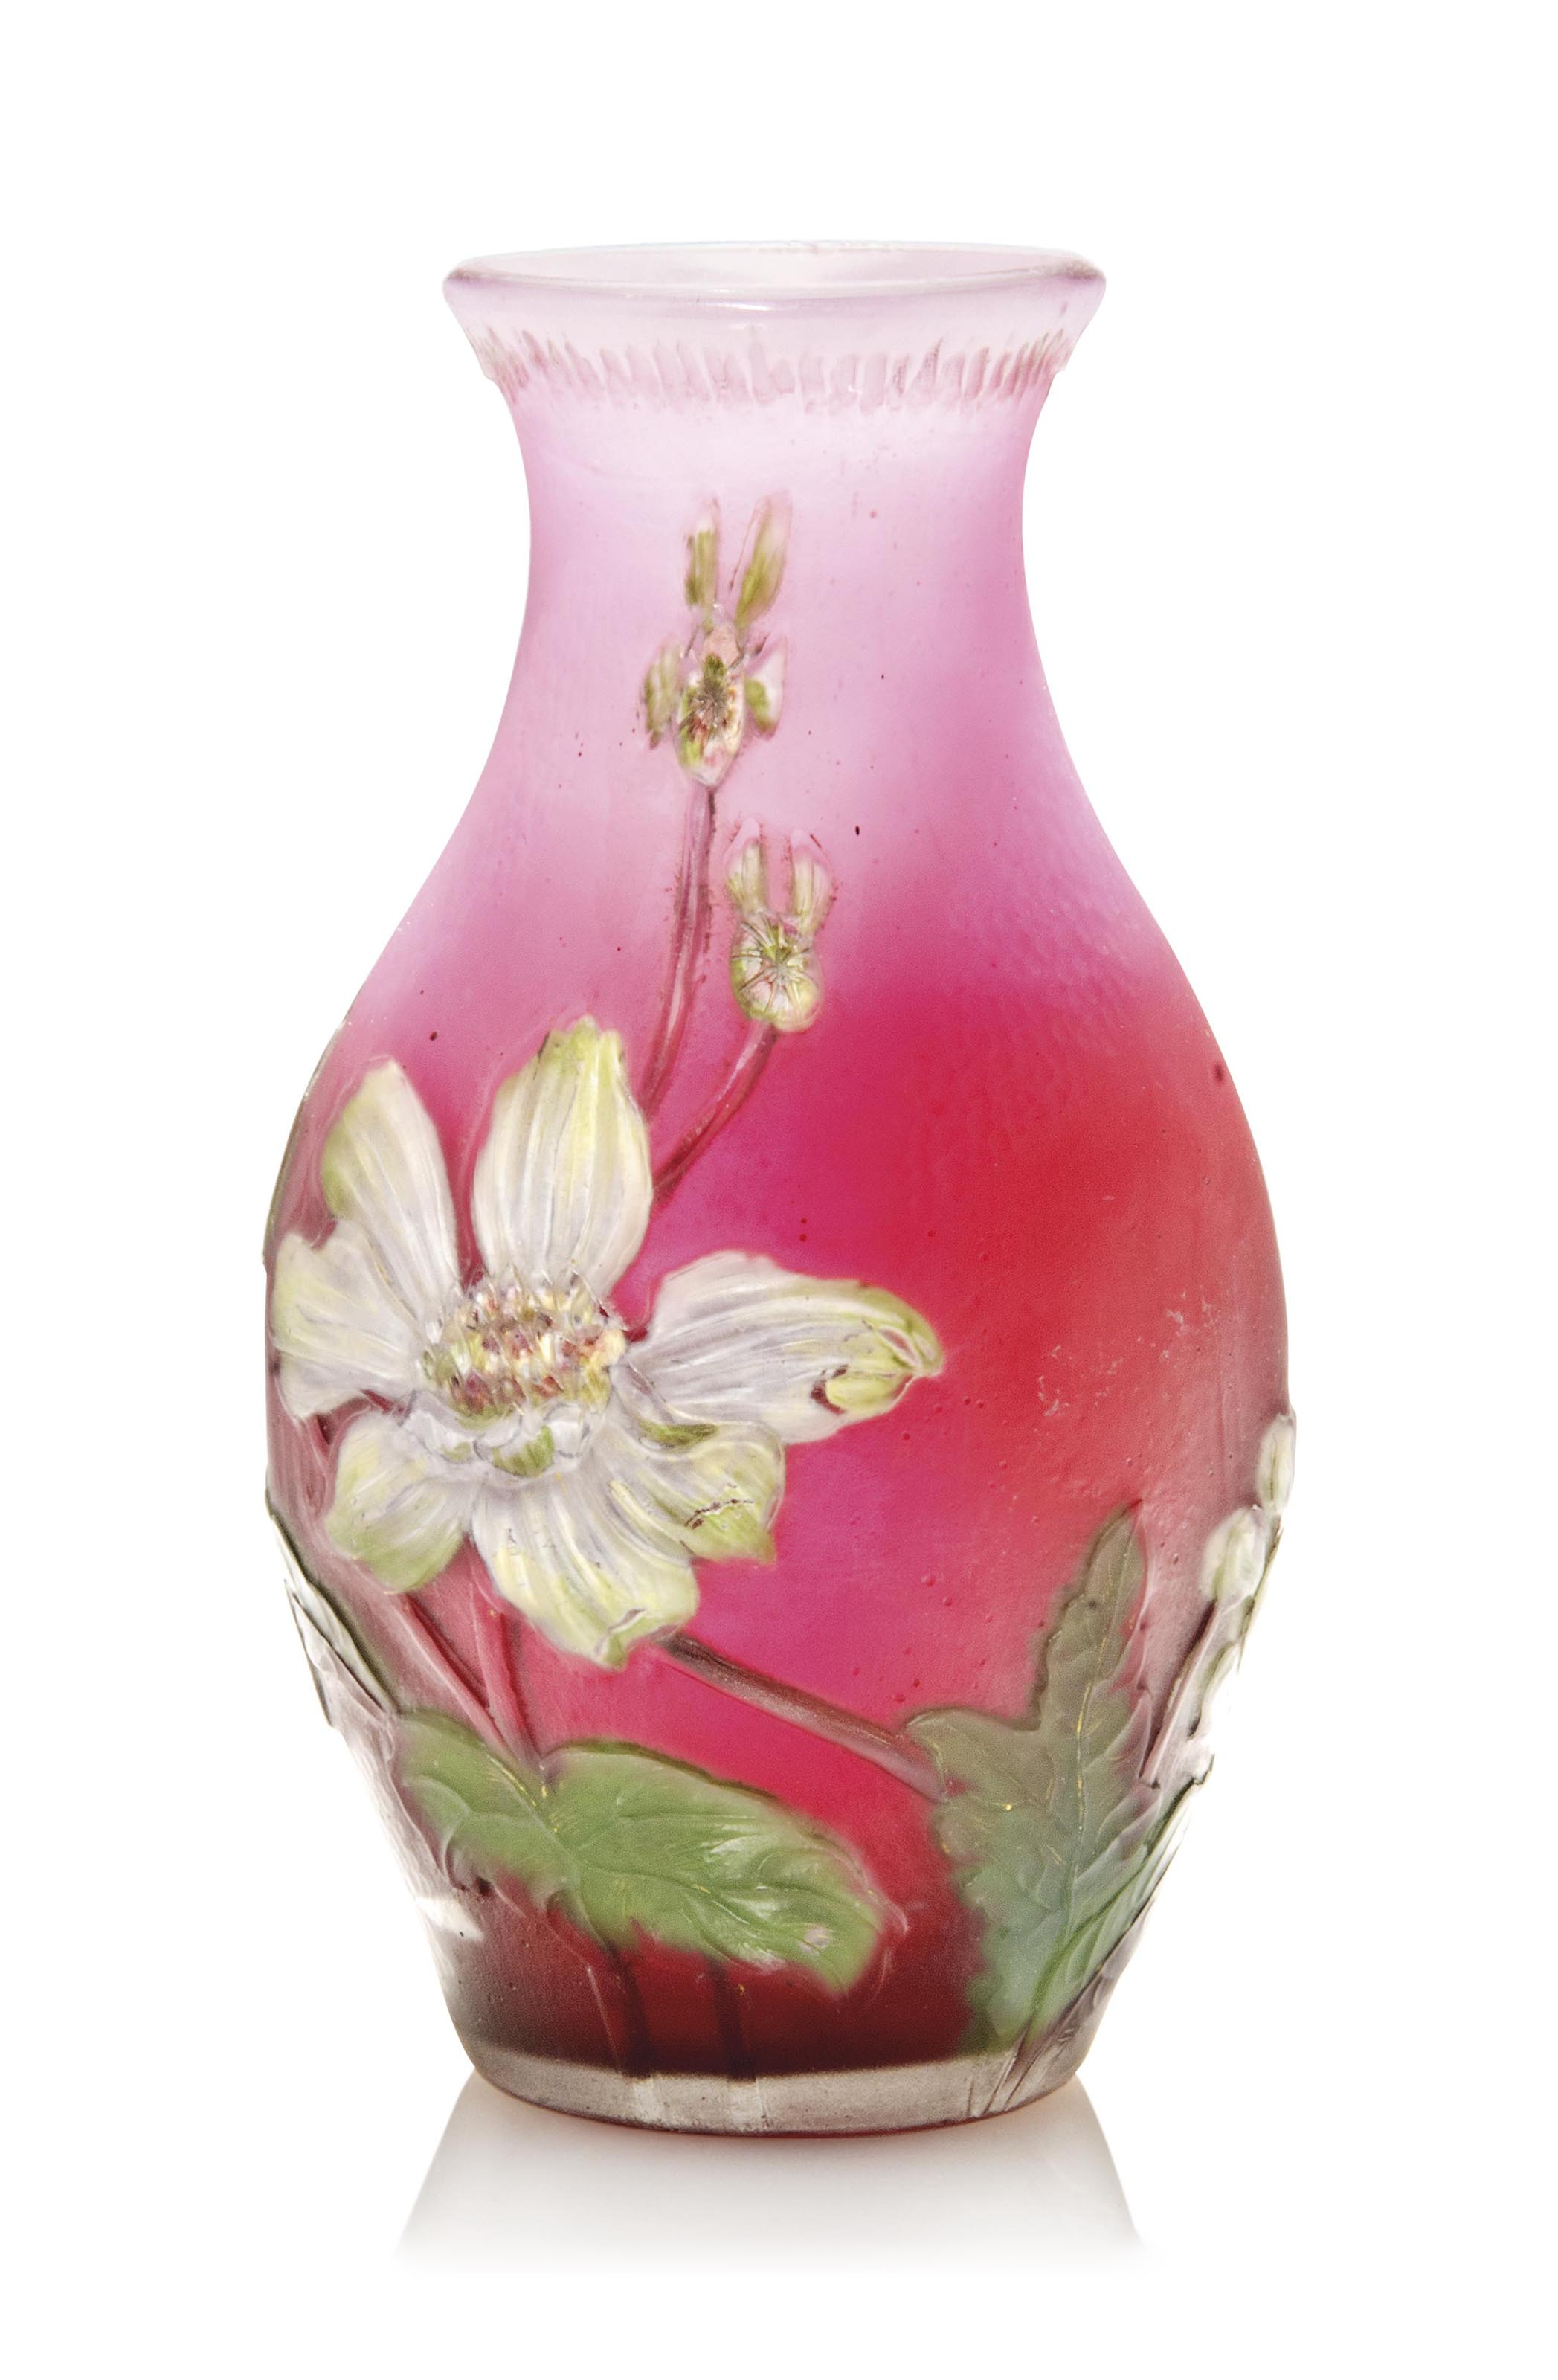 A BURGUN SCHVERER & CO (1711-1969) INTERNALLY DECORATED AND WHEEL CARVED GLASS VASE